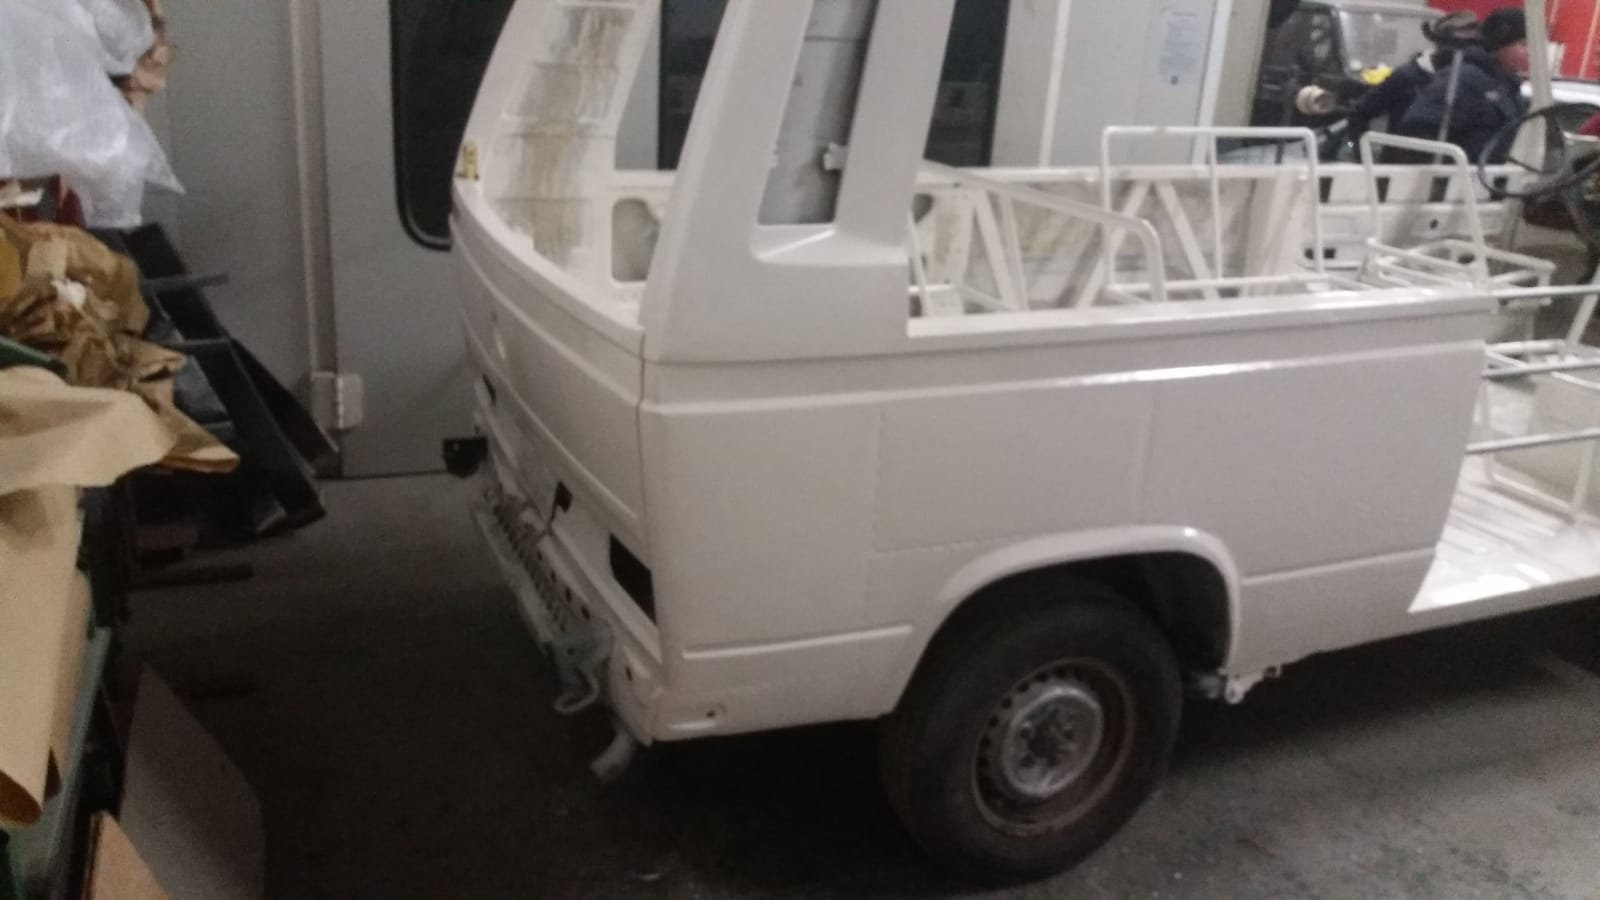 1980 WW Transporter T25 spider version For Sale (picture 5 of 6)